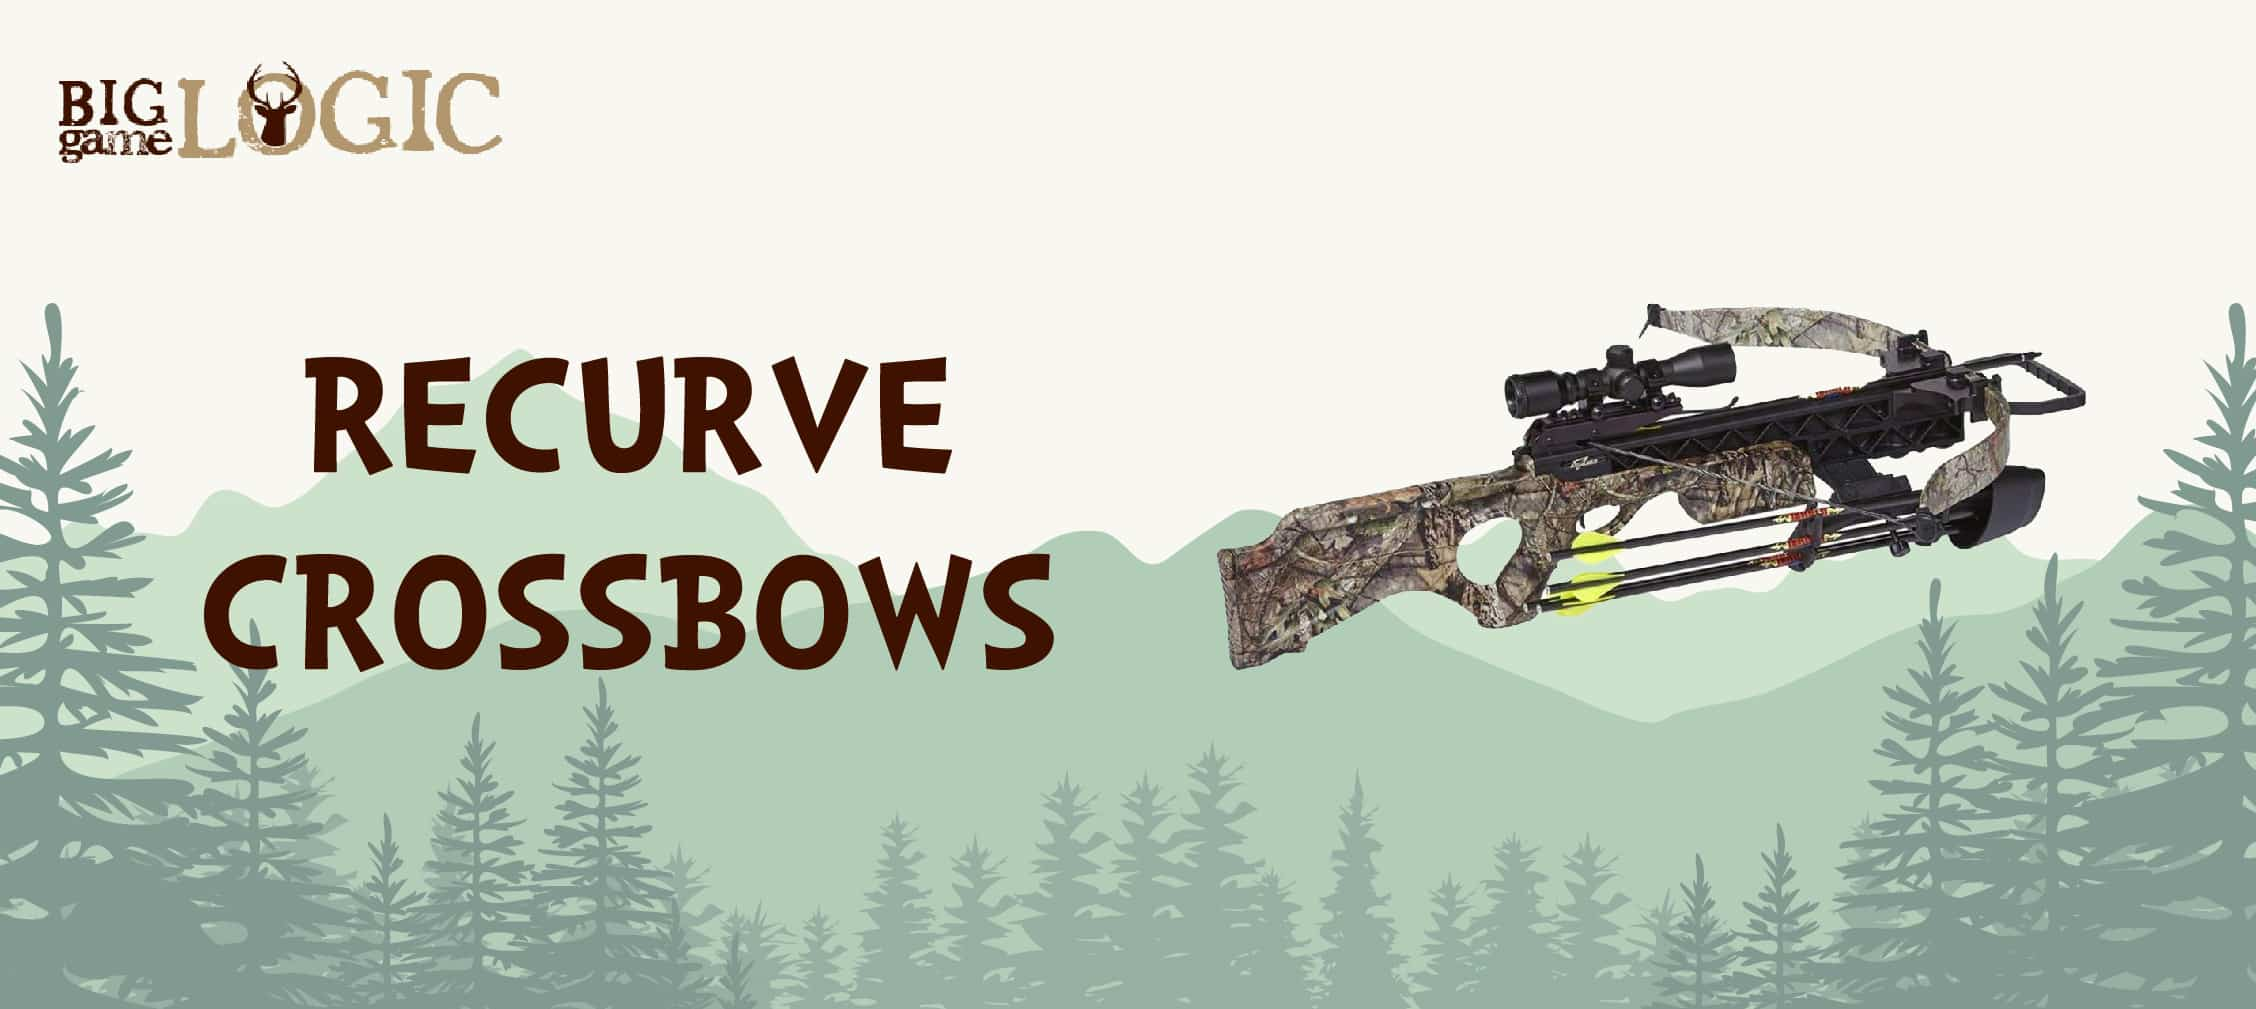 Best Recurve Crossbows of 2019 – Complete Buyer's Guide - Big Game Logic